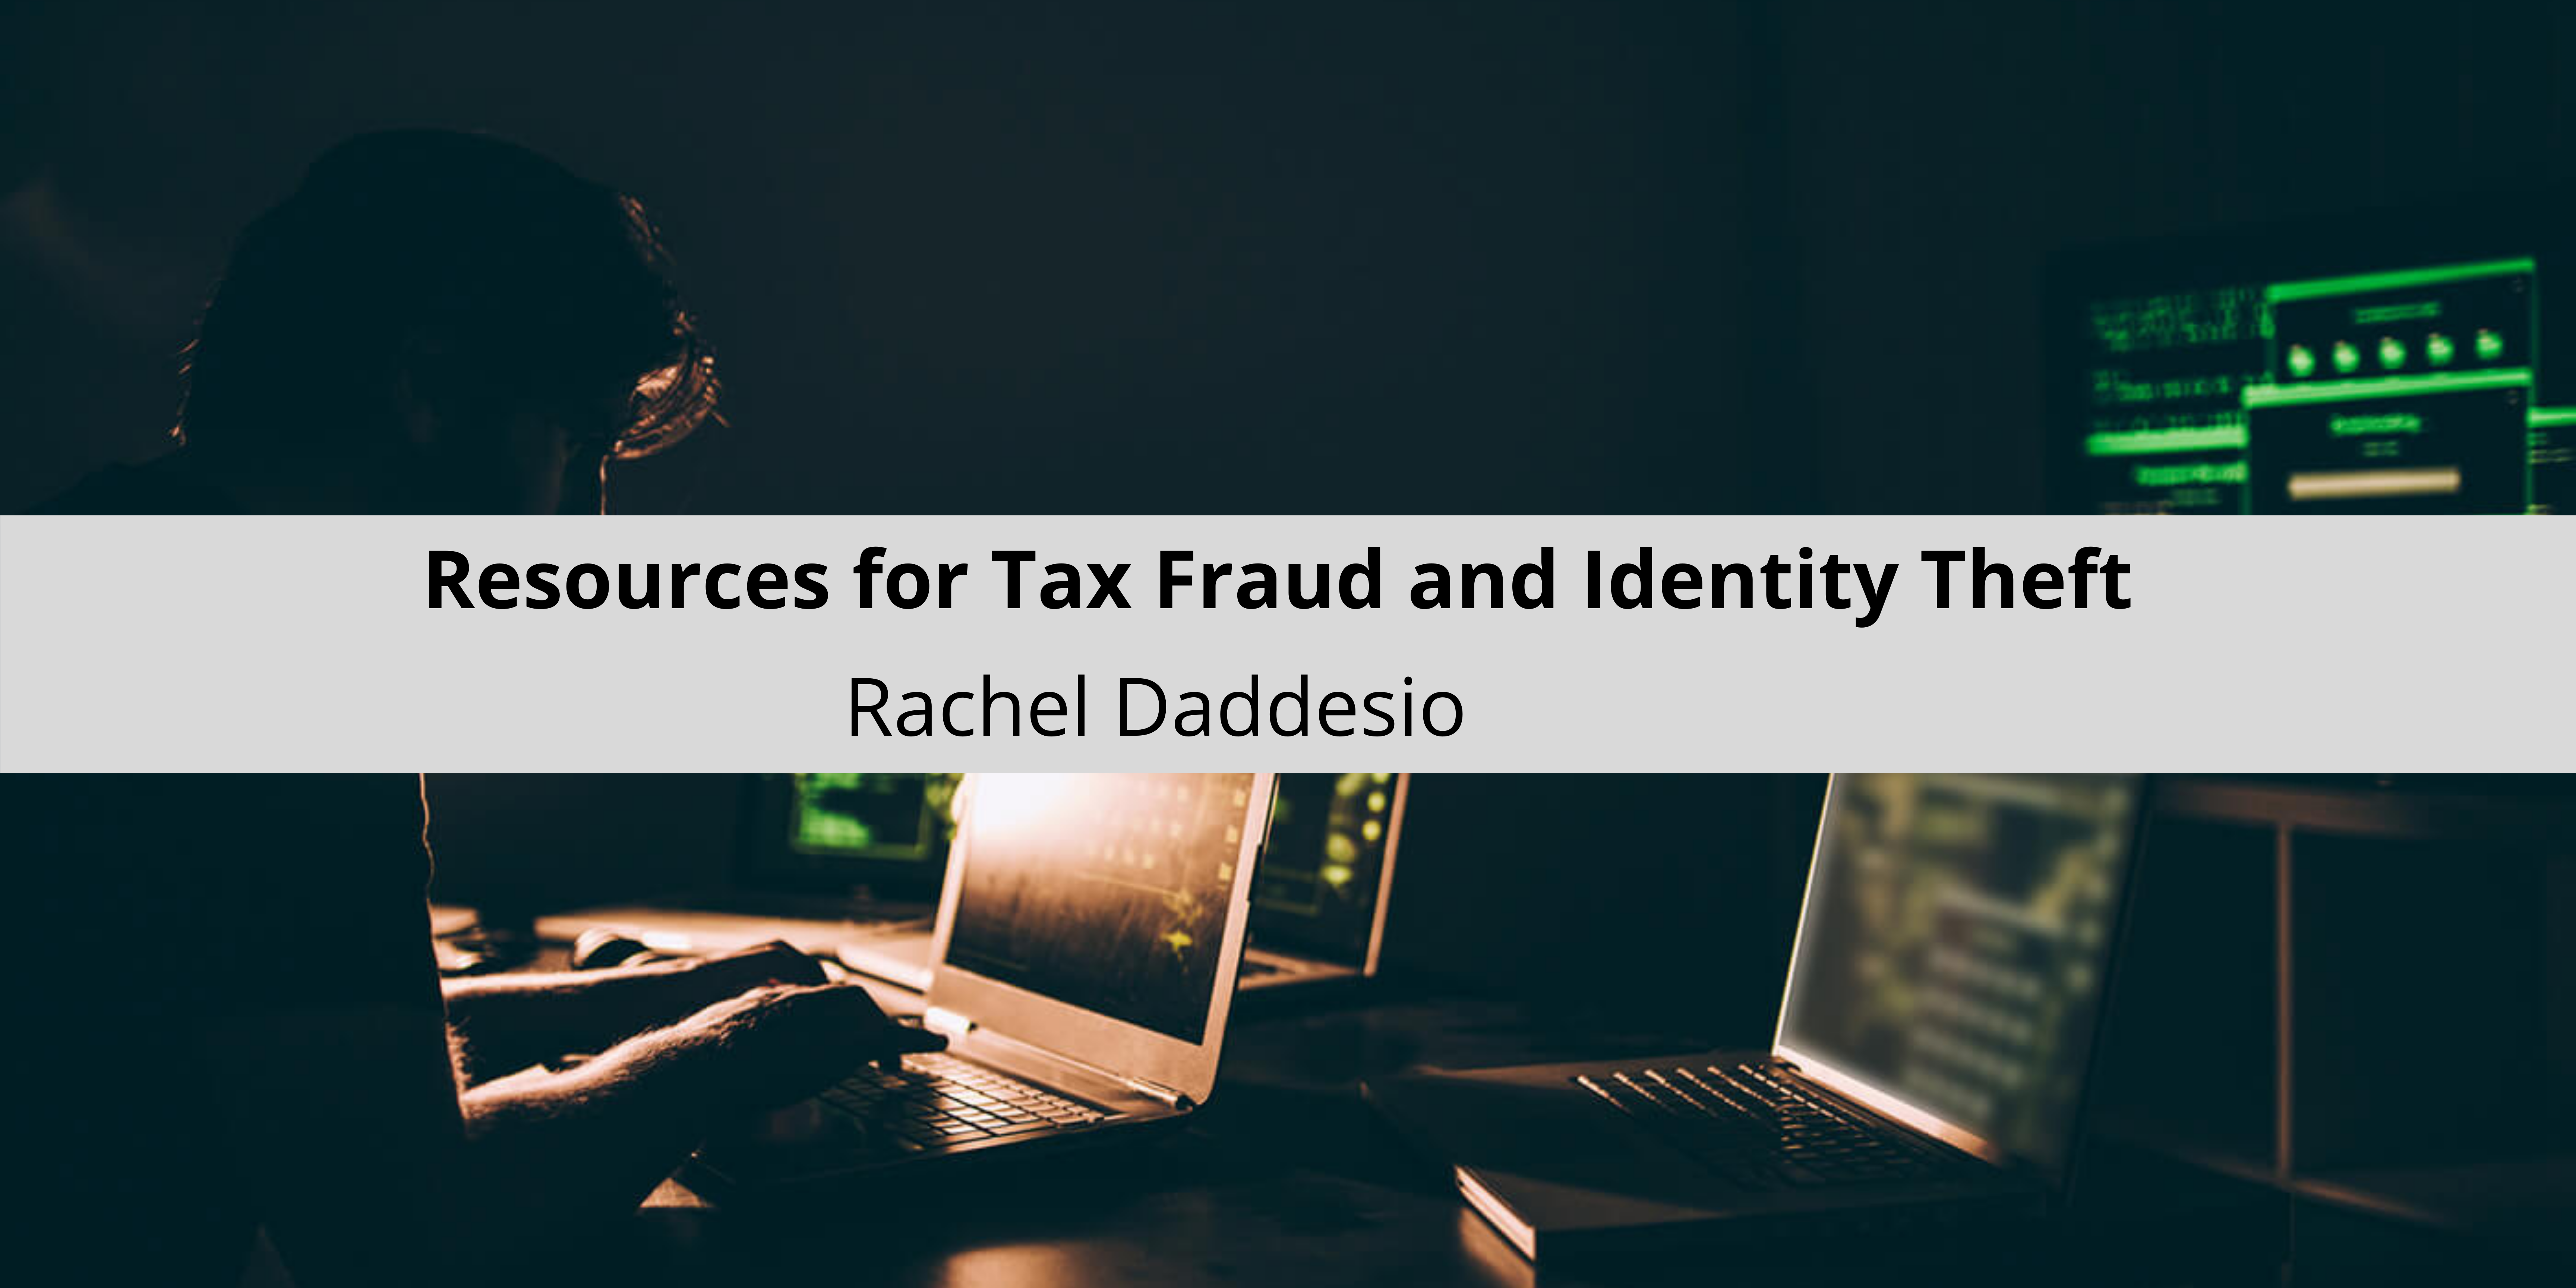 Resources-for-Tax-Fraud-and-Identity-Theft-